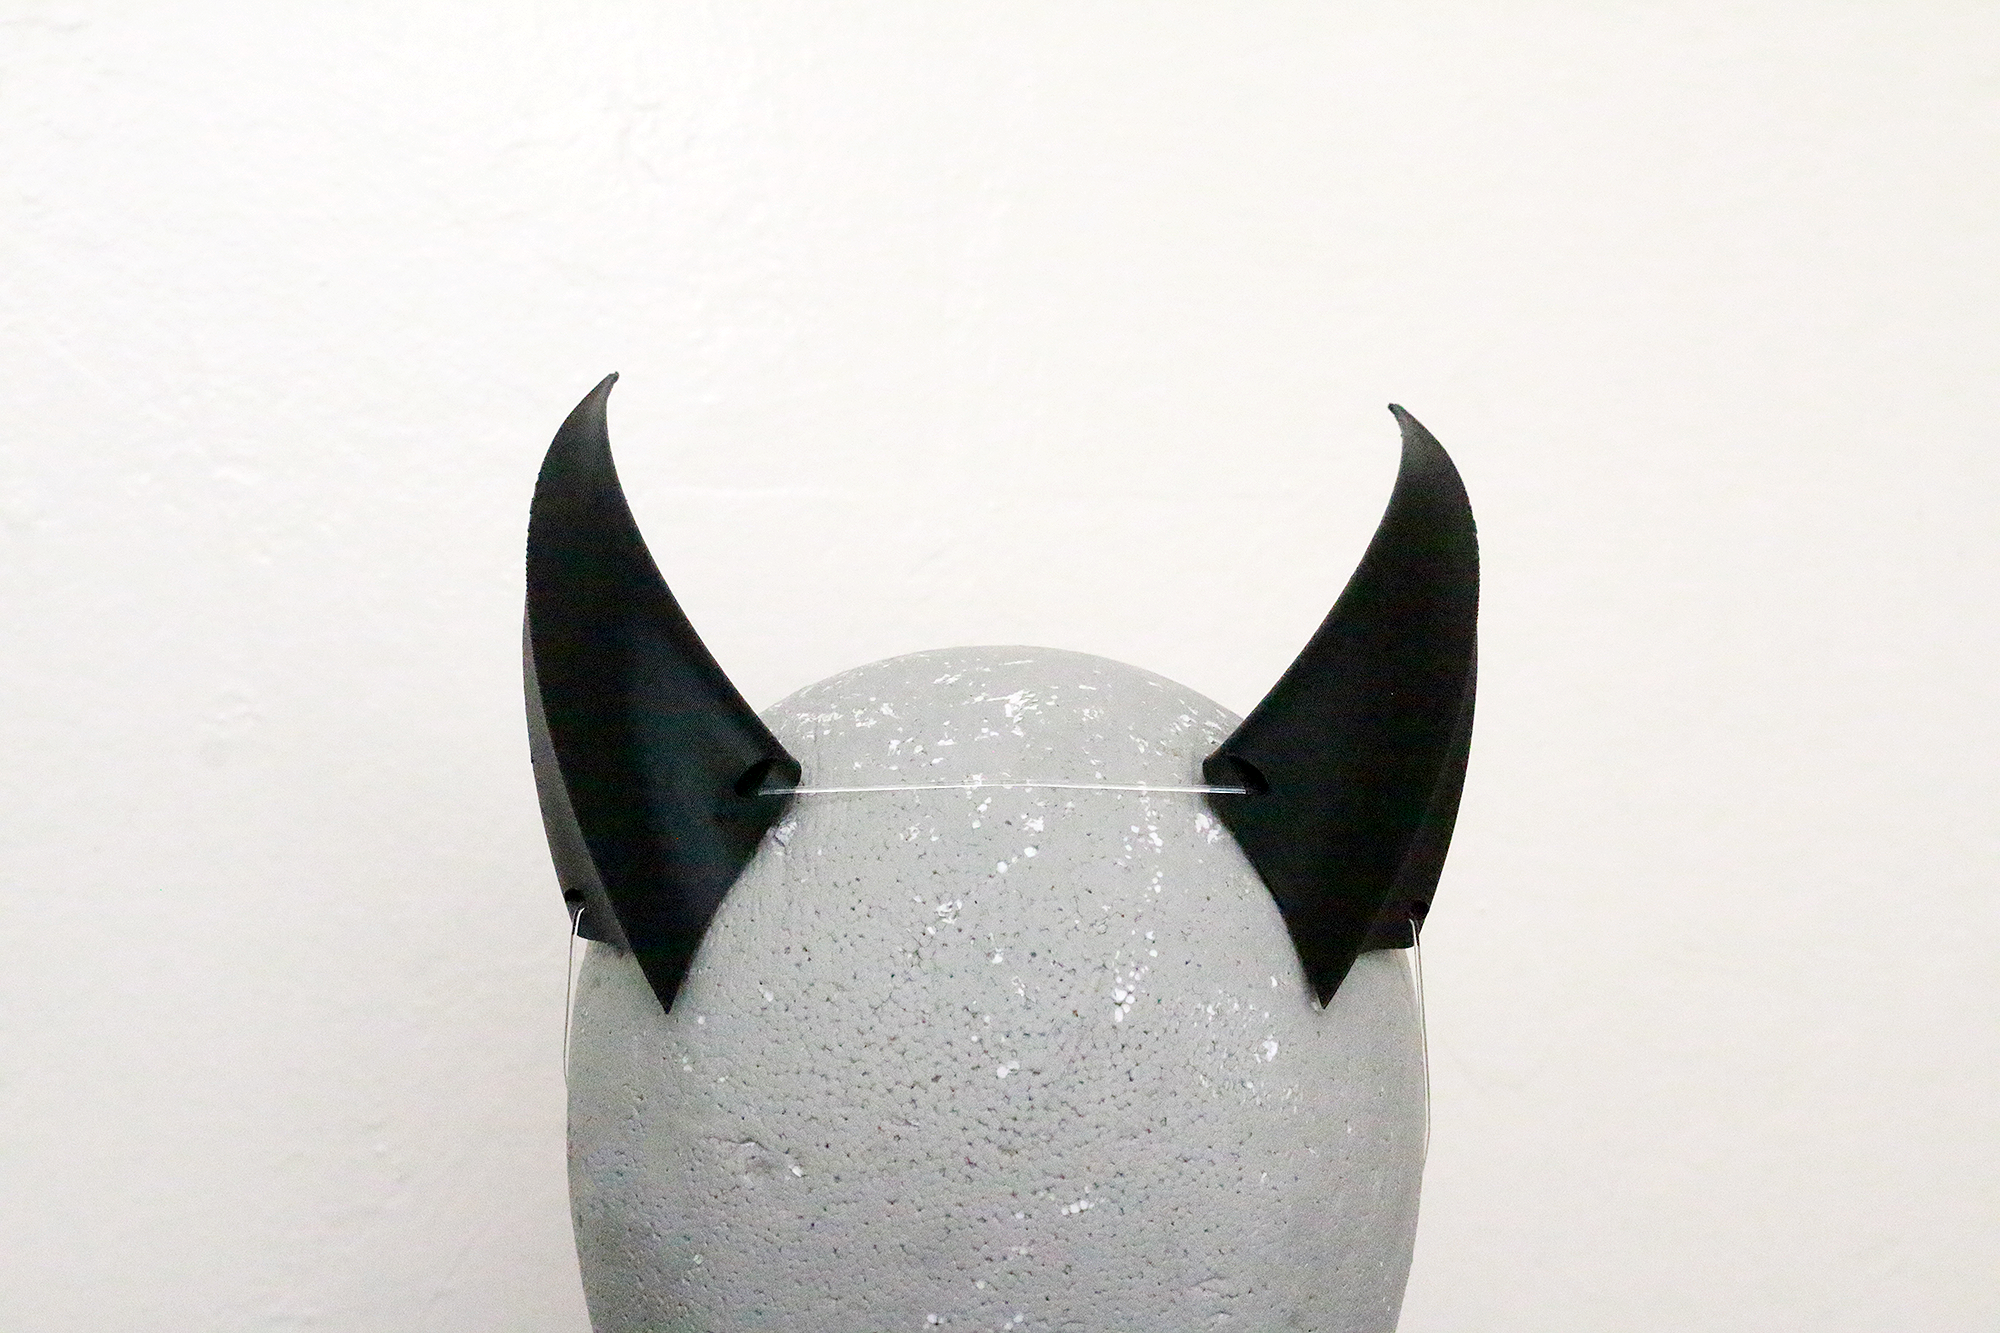 Medium Brute 3D Printed Costume Horns